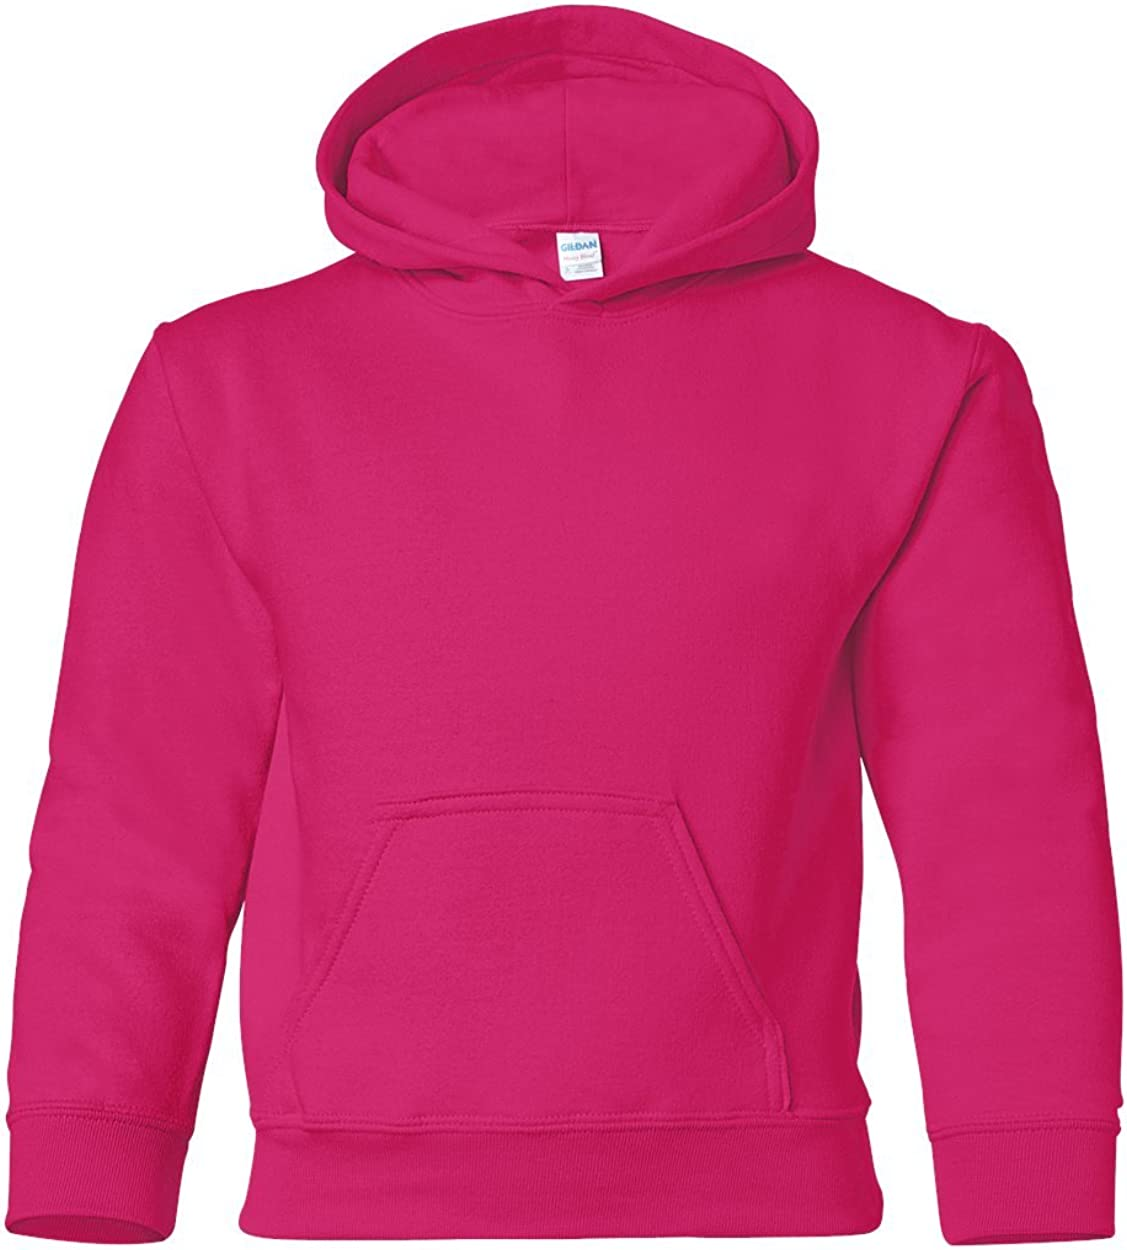 Heavy Blend Hooded Sweatshirt (G185B) Heliconia, M (Pack of 12)